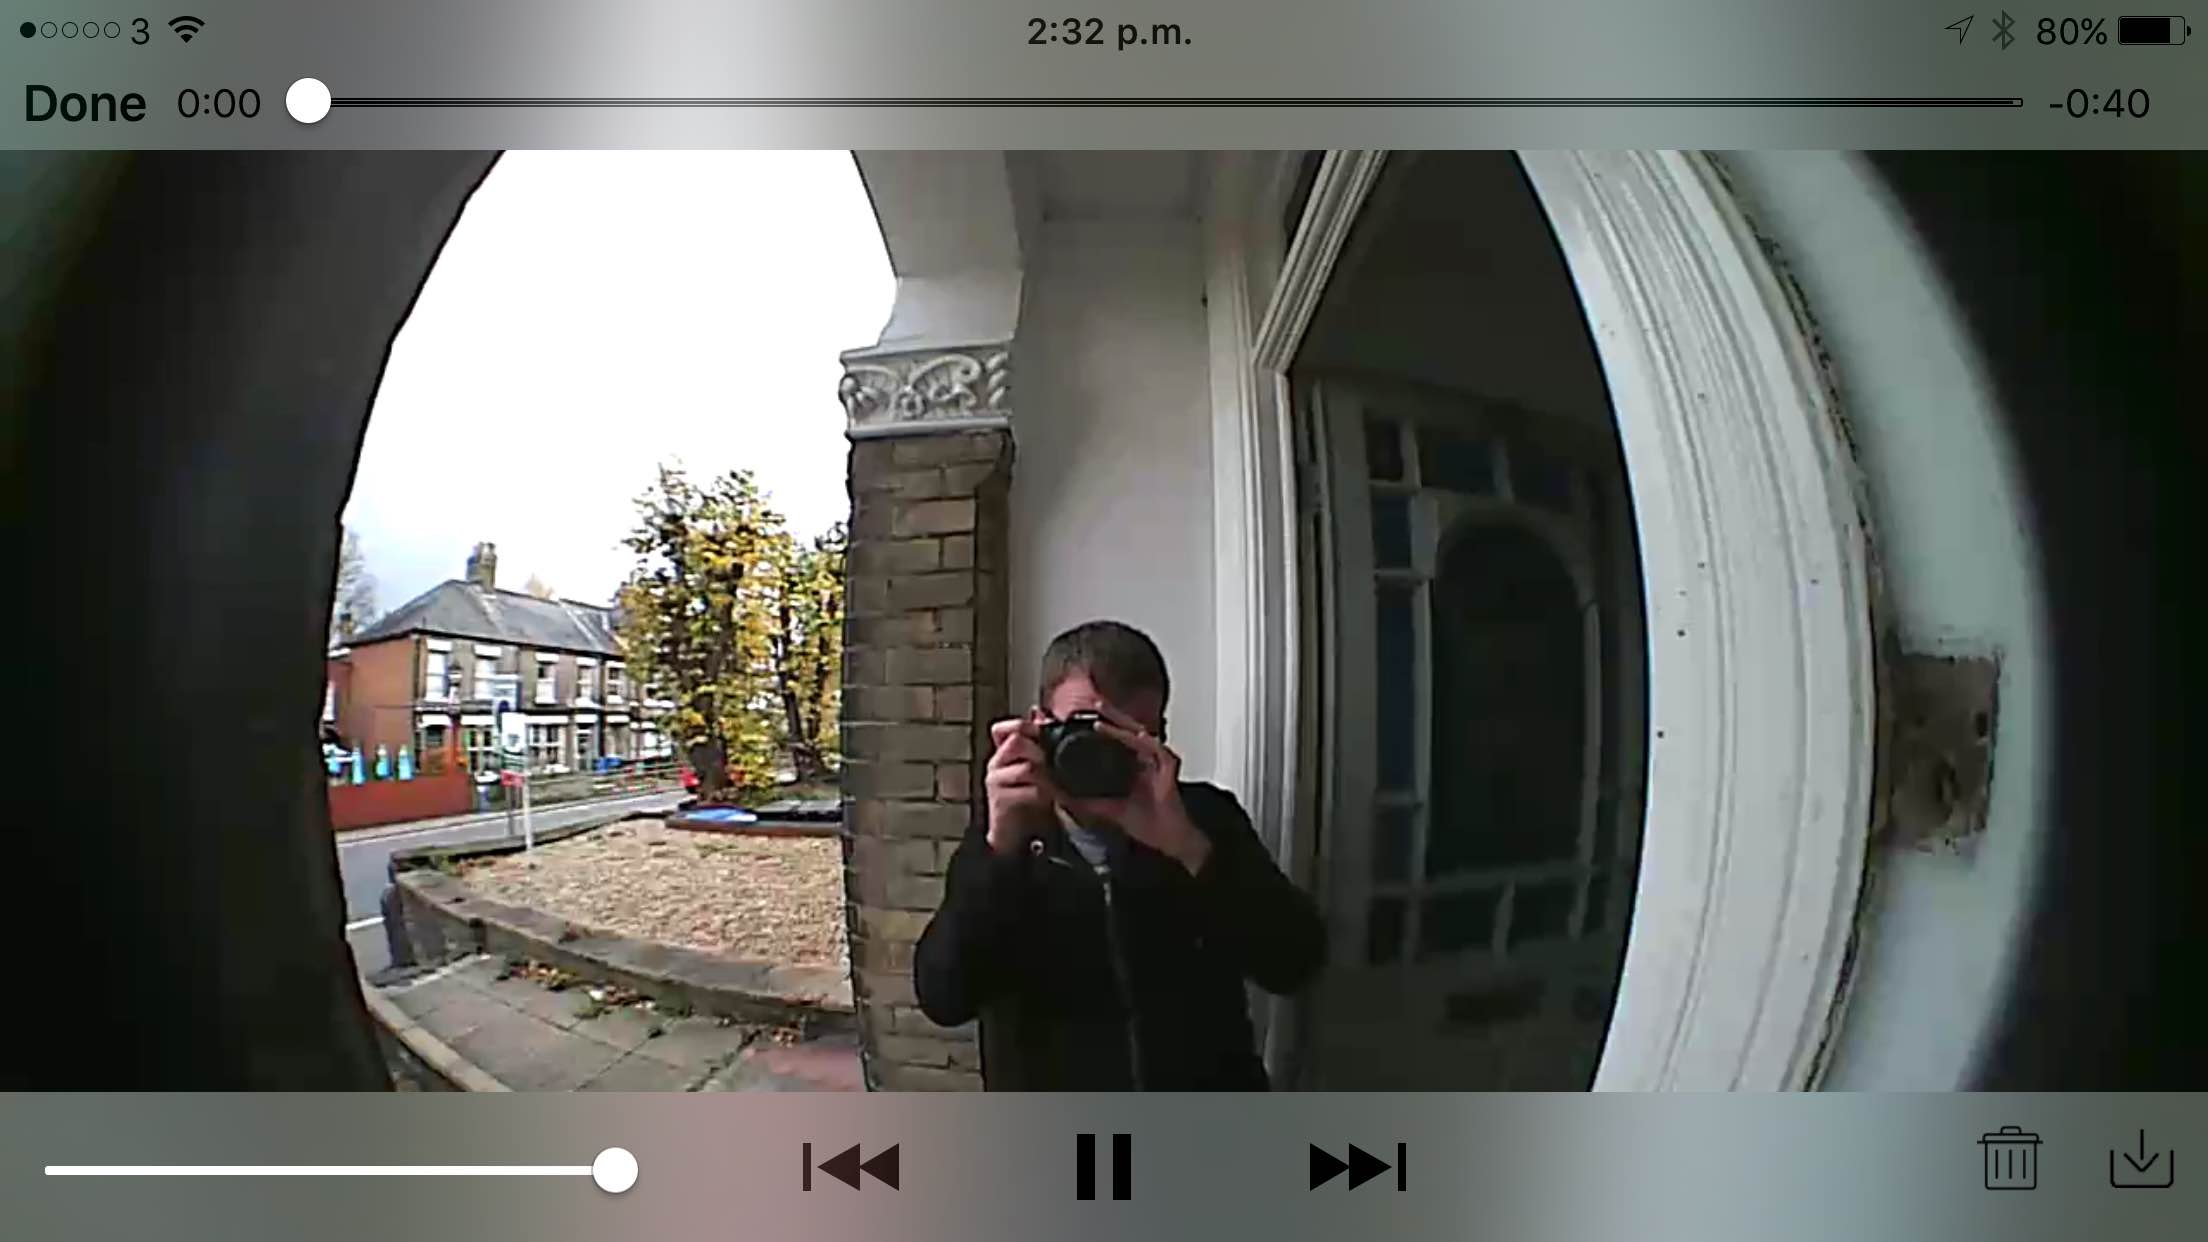 Ring S Video Doorbell Let Me Banish Unwanted Visitors